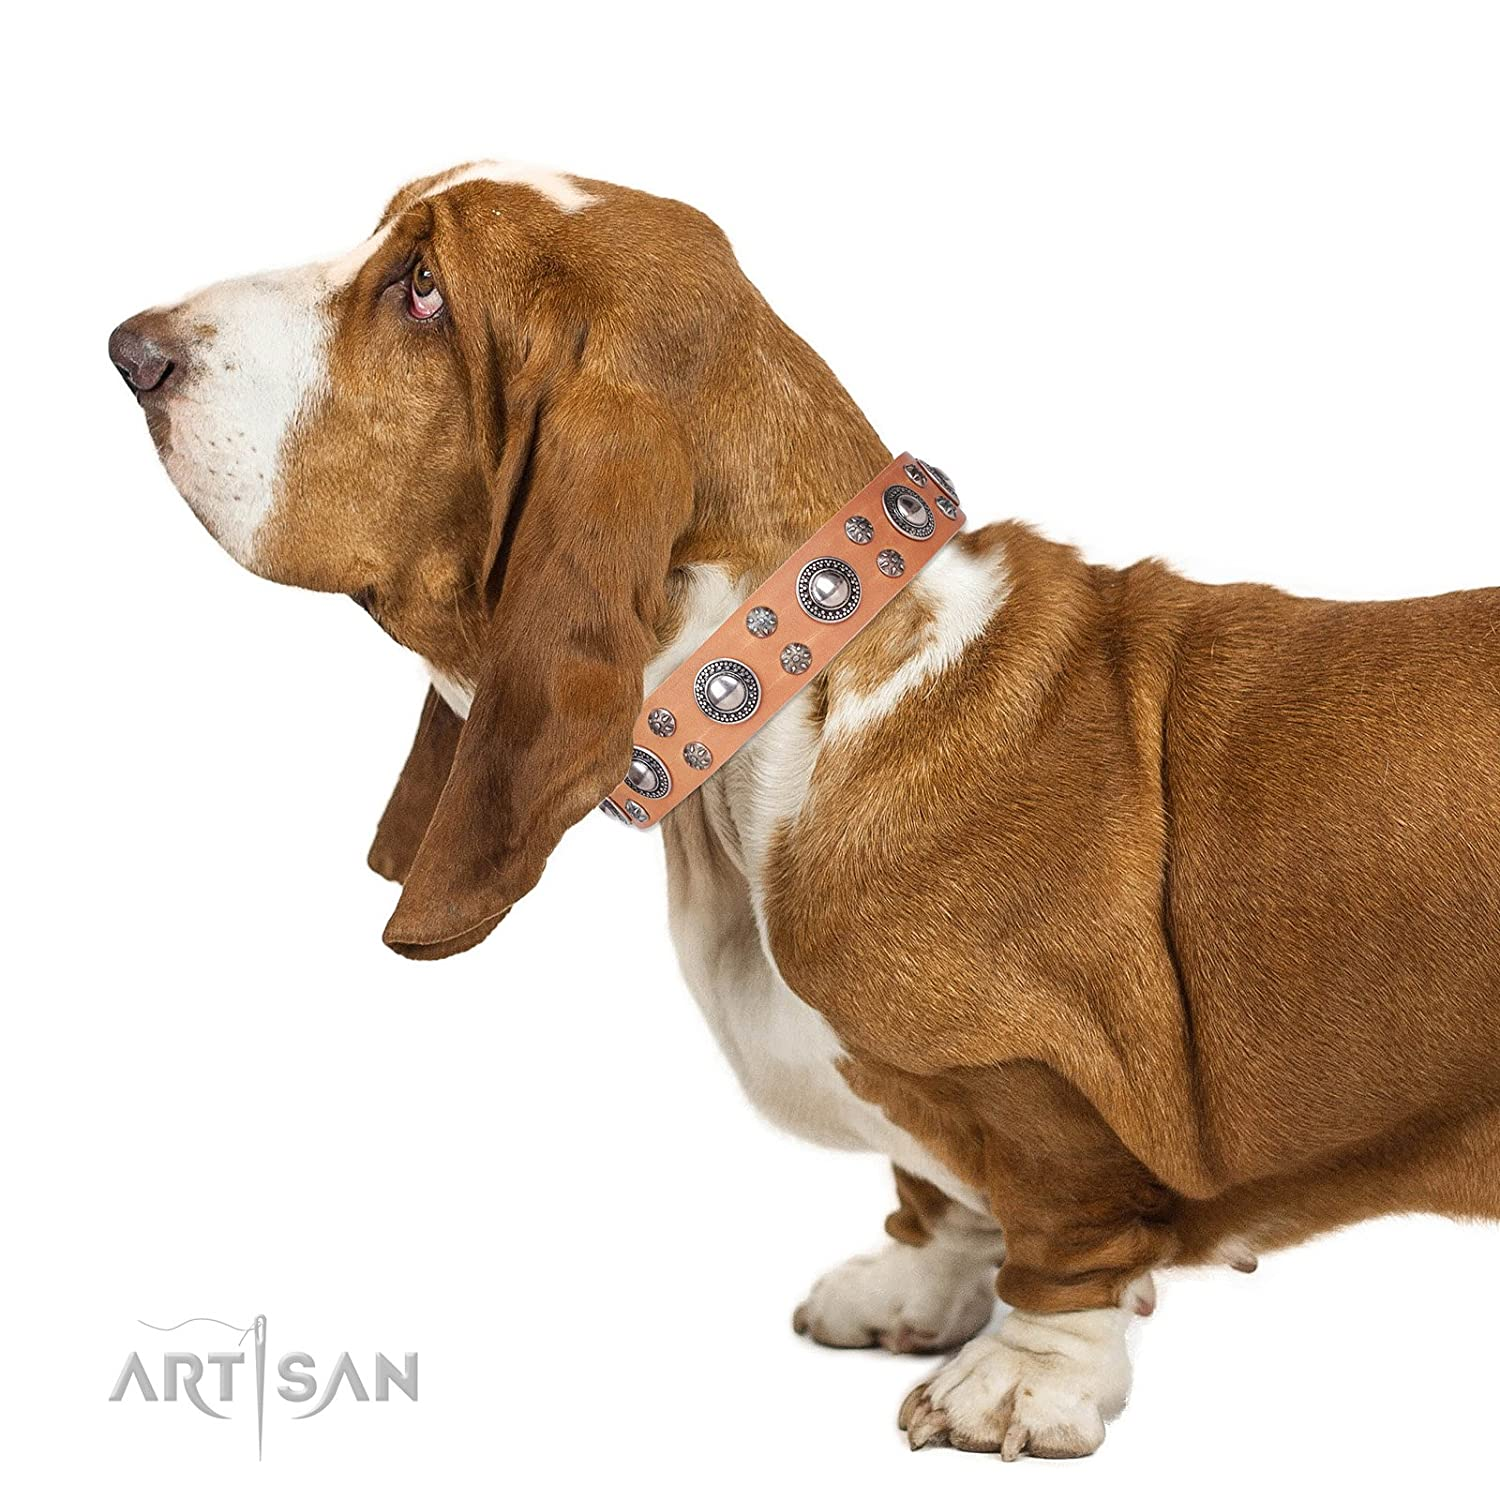 Fits for 35 inch (88cm) dog's neck size FDT Artisan 35 inch Tan Leather Dog Collar with Chrome Plated Decorations Floral Fashion